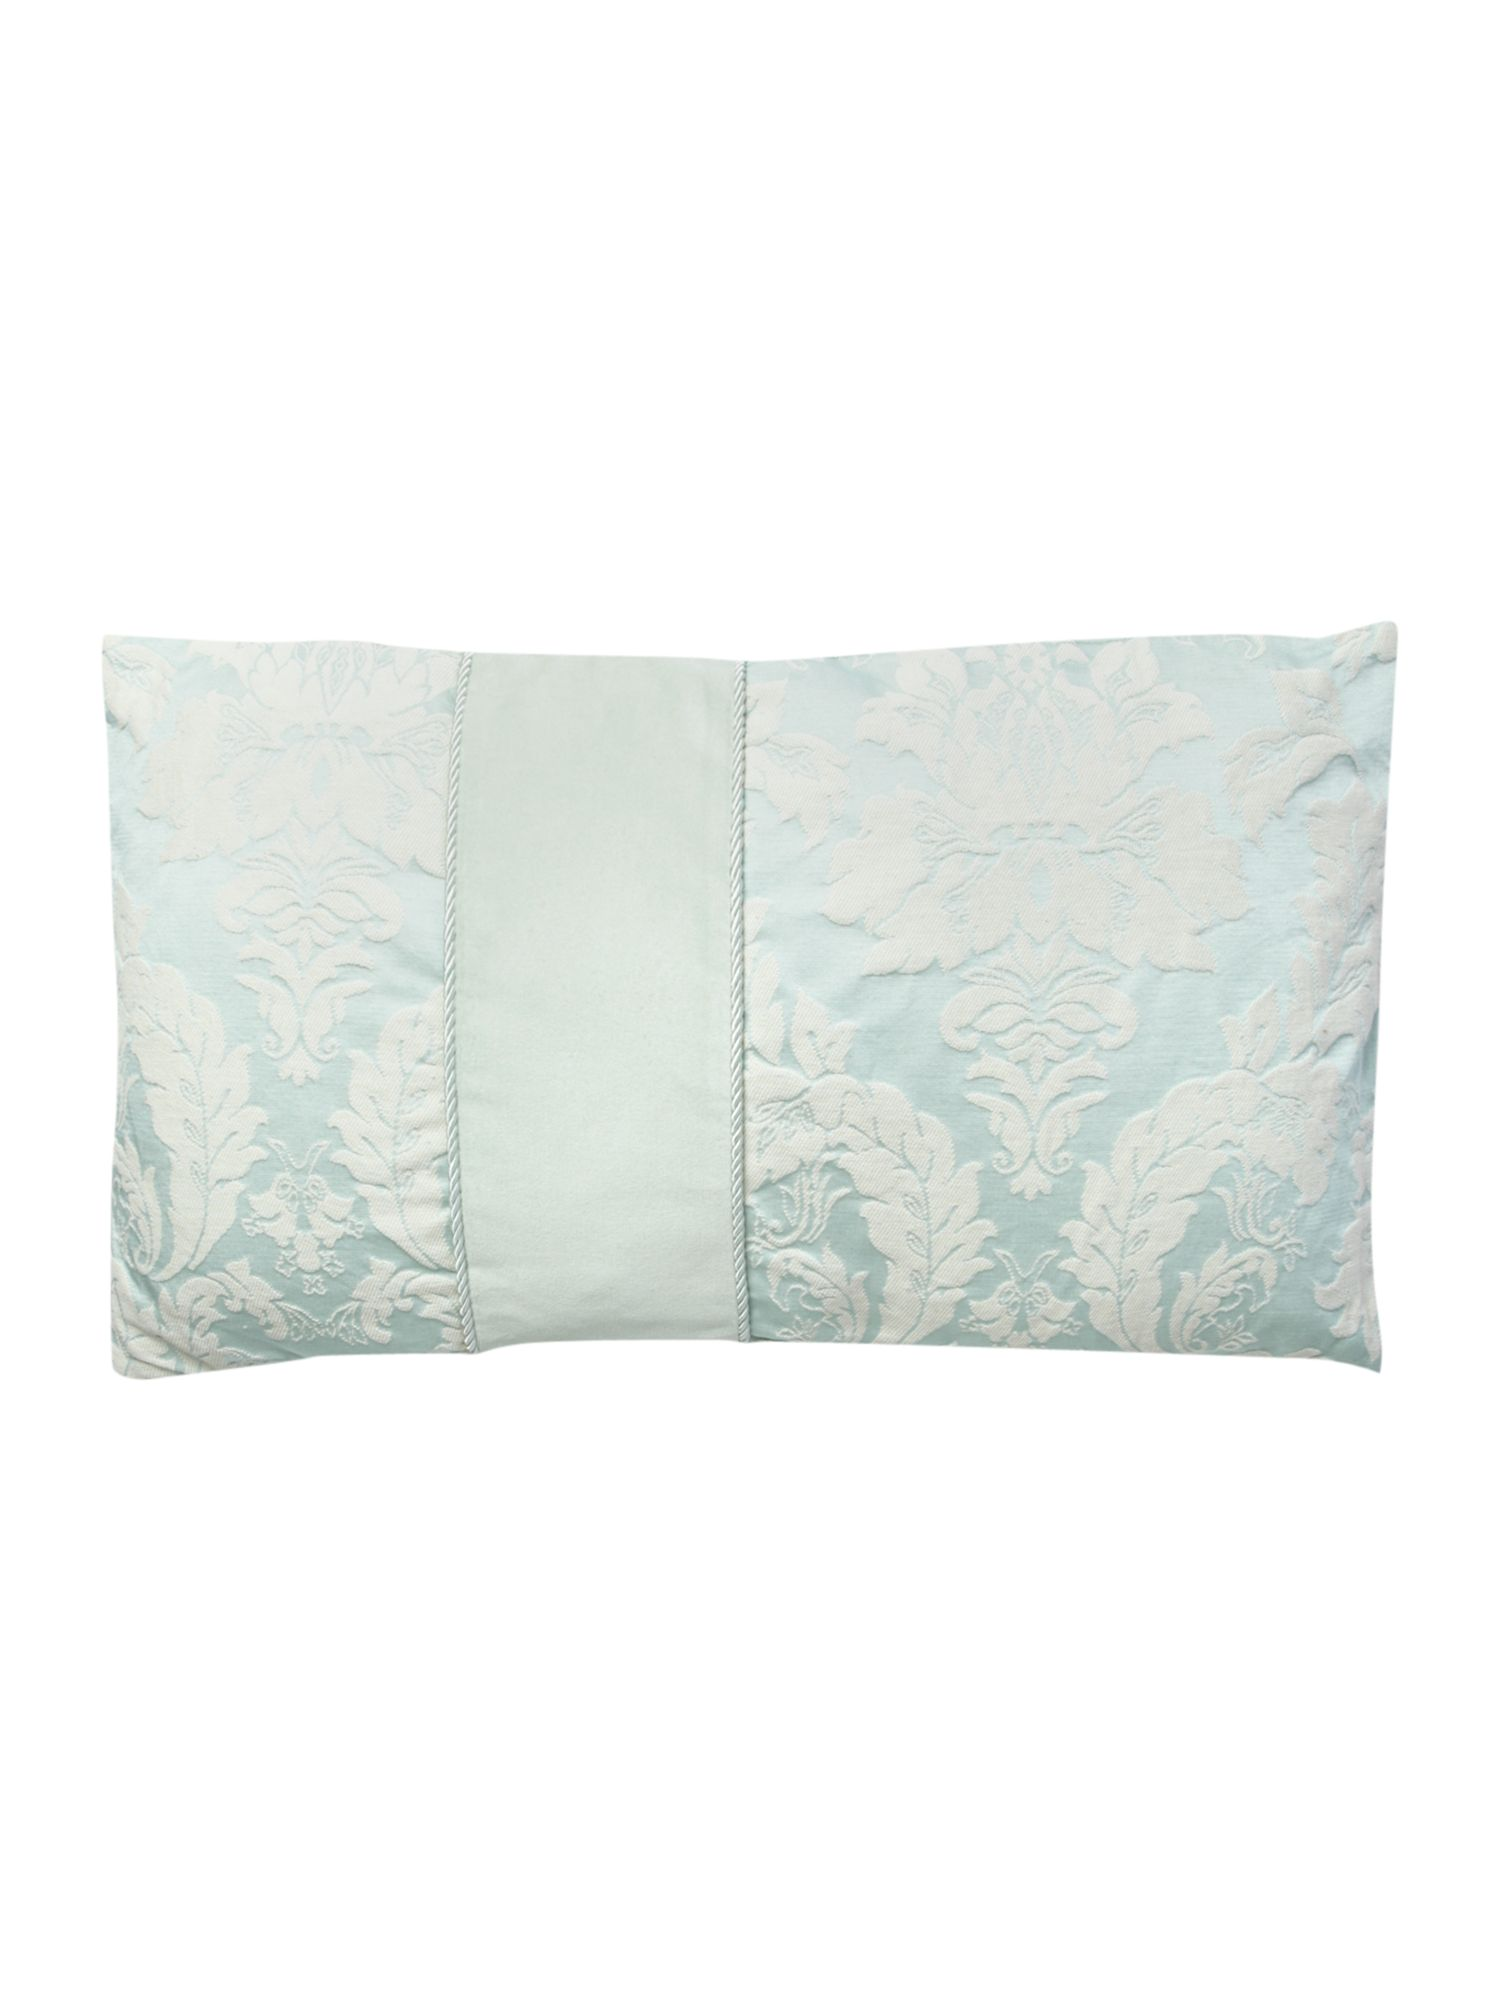 Rivello duckegg cushion